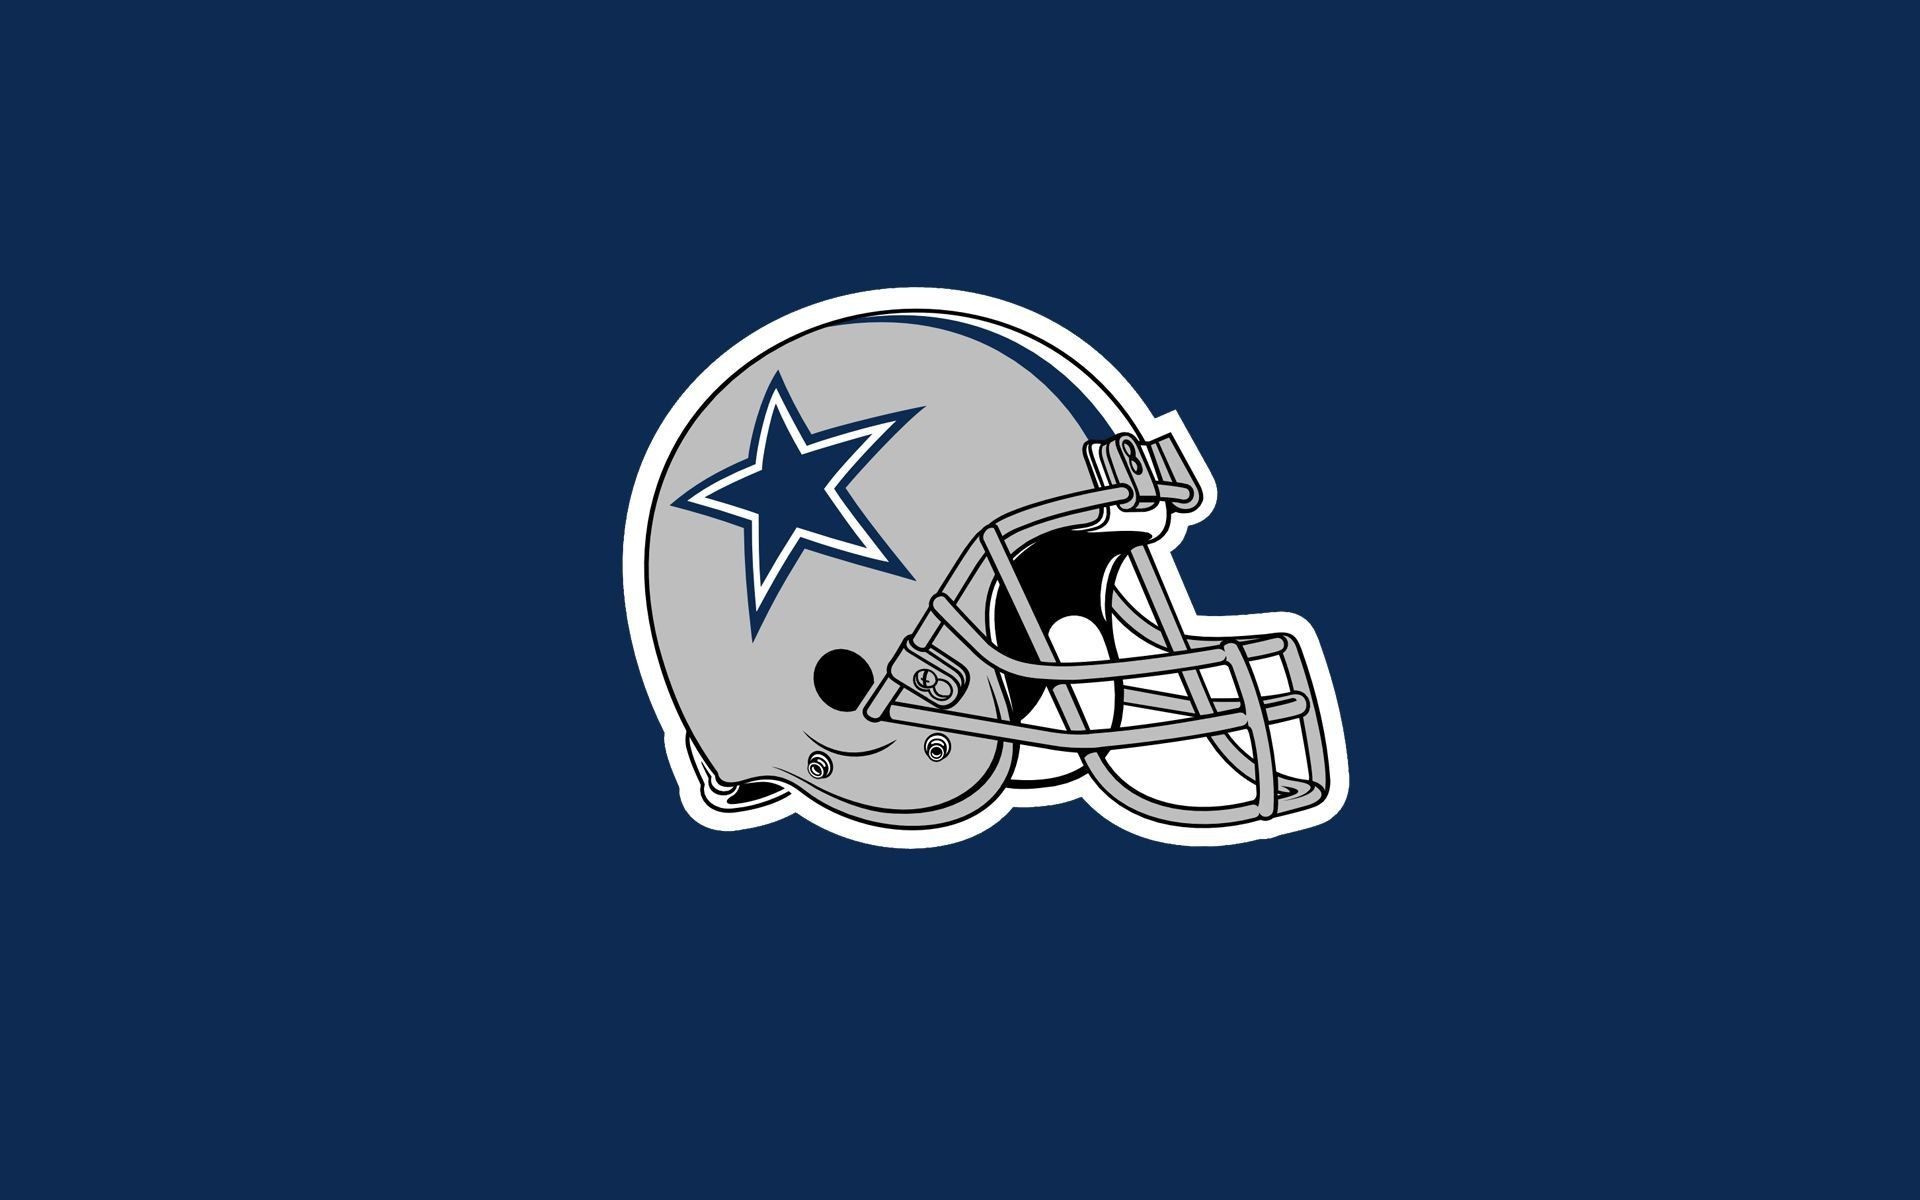 Dallas Cowboys Star Logo Wallpaper (66+